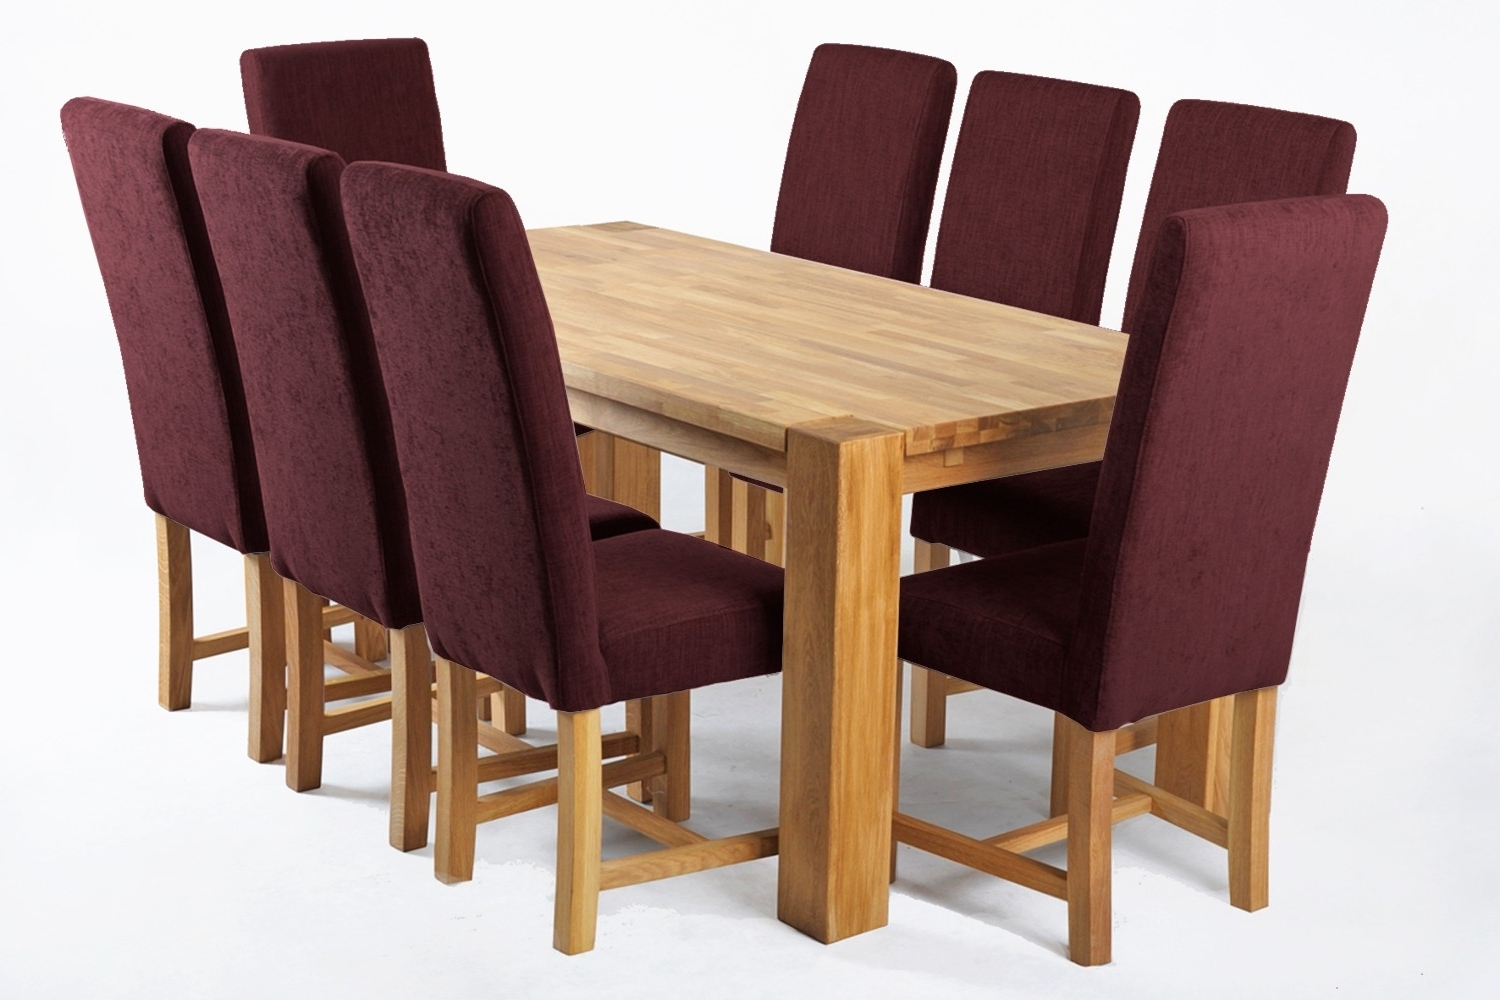 Oak Dining Tables And Fabric Chairs Throughout Famous Kensington Fabric Dining Chair With Massive Oak Legs – Vino (View 7 of 25)